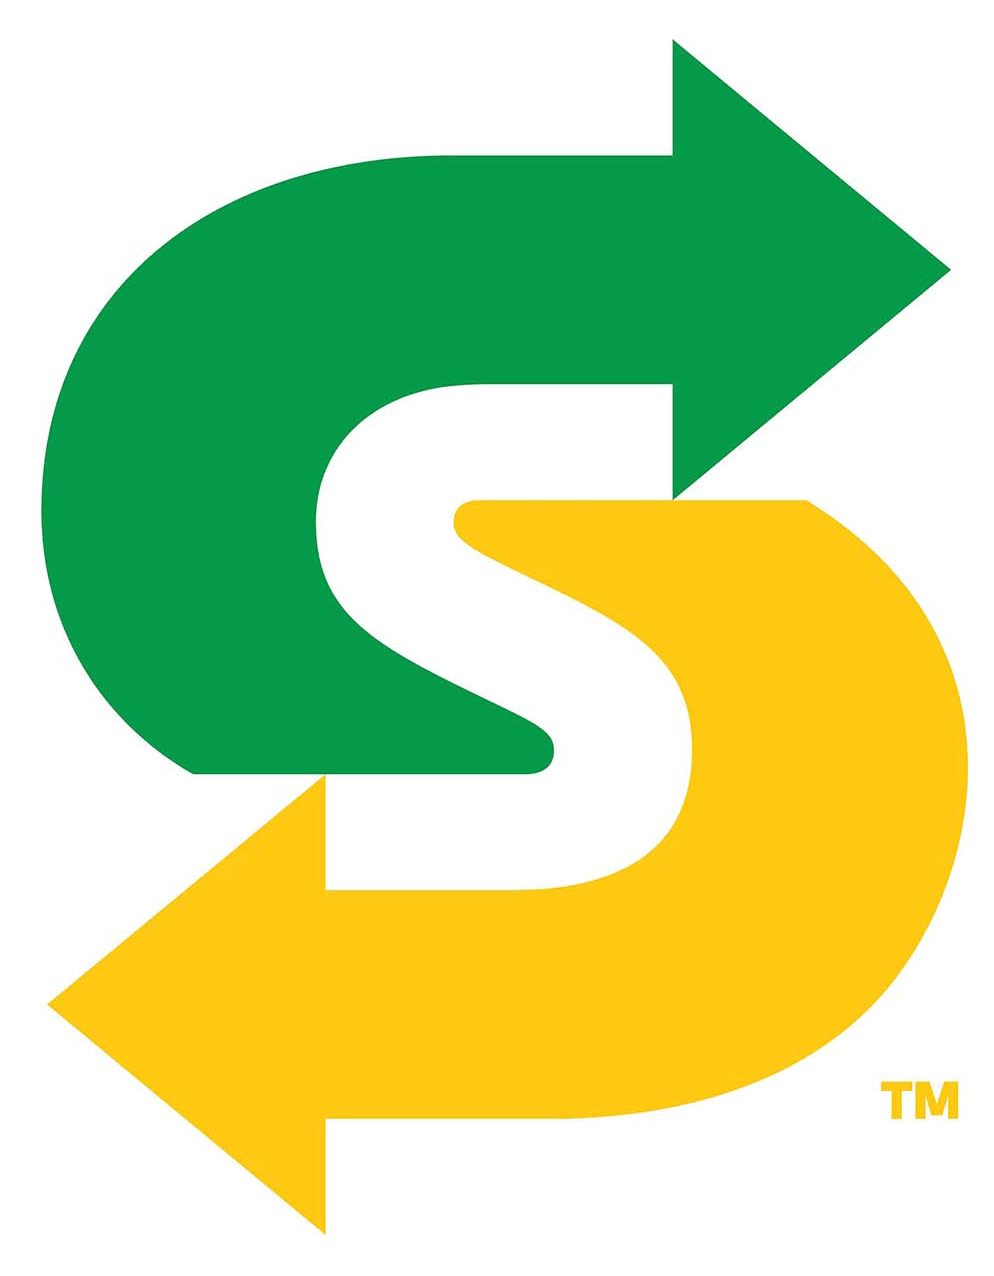 Brand new new logo for subway Design a new logo